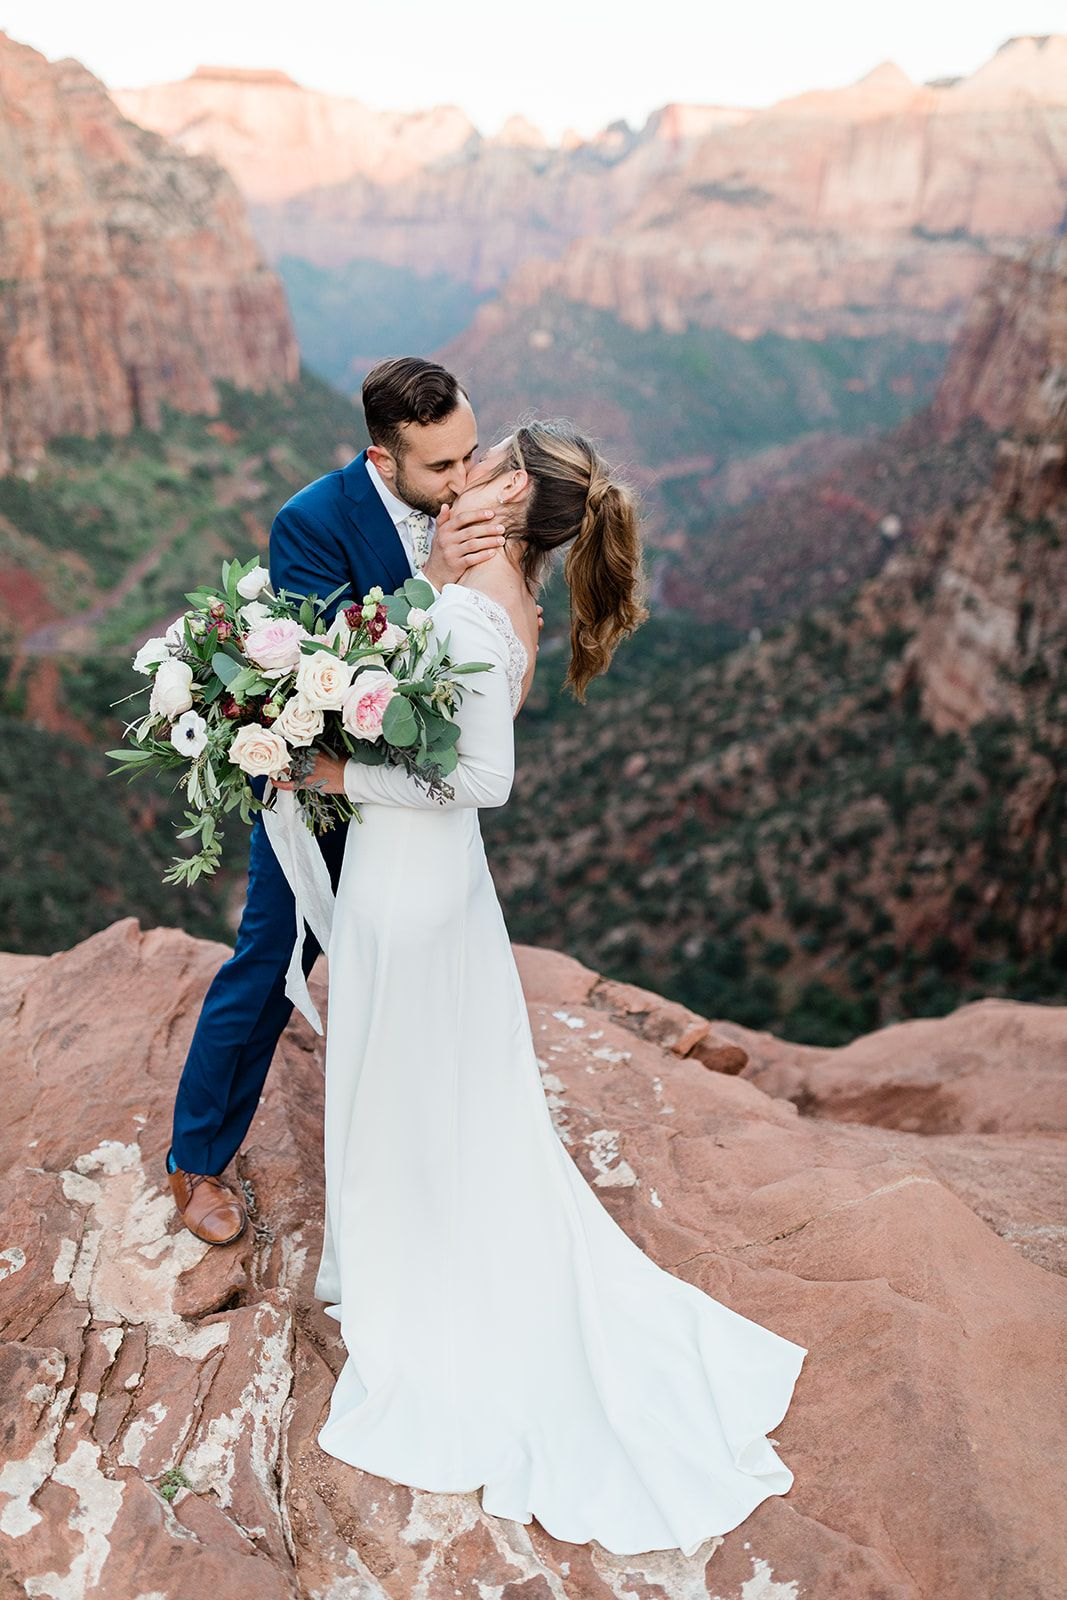 Zion National Park Elopement Zion Elopement Groom Sees Bride For First Time National Park Wedding Zion National Park Park Weddings